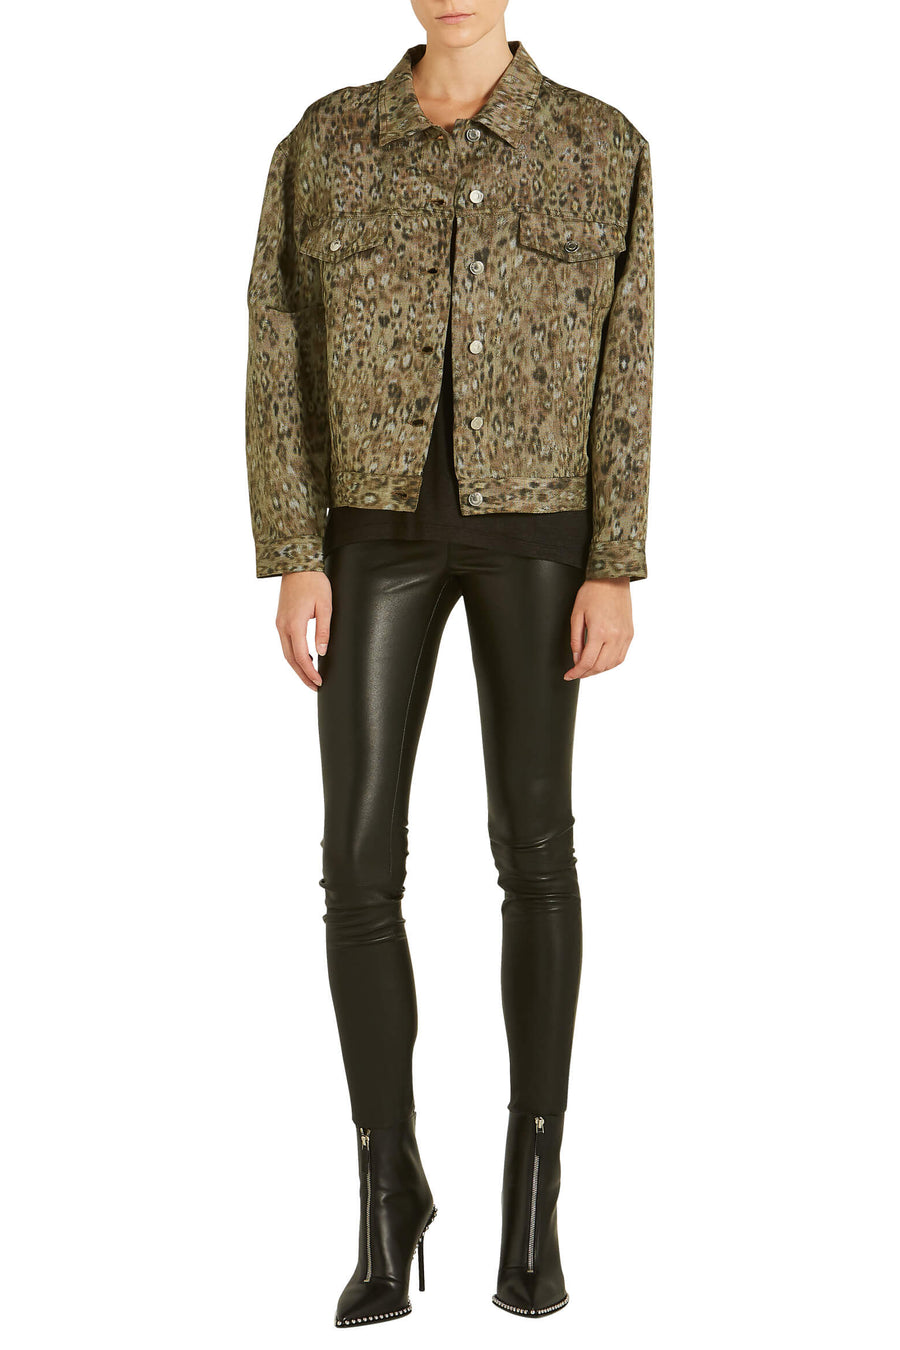 IRO Empathy Leopard Jacket from The New Trend